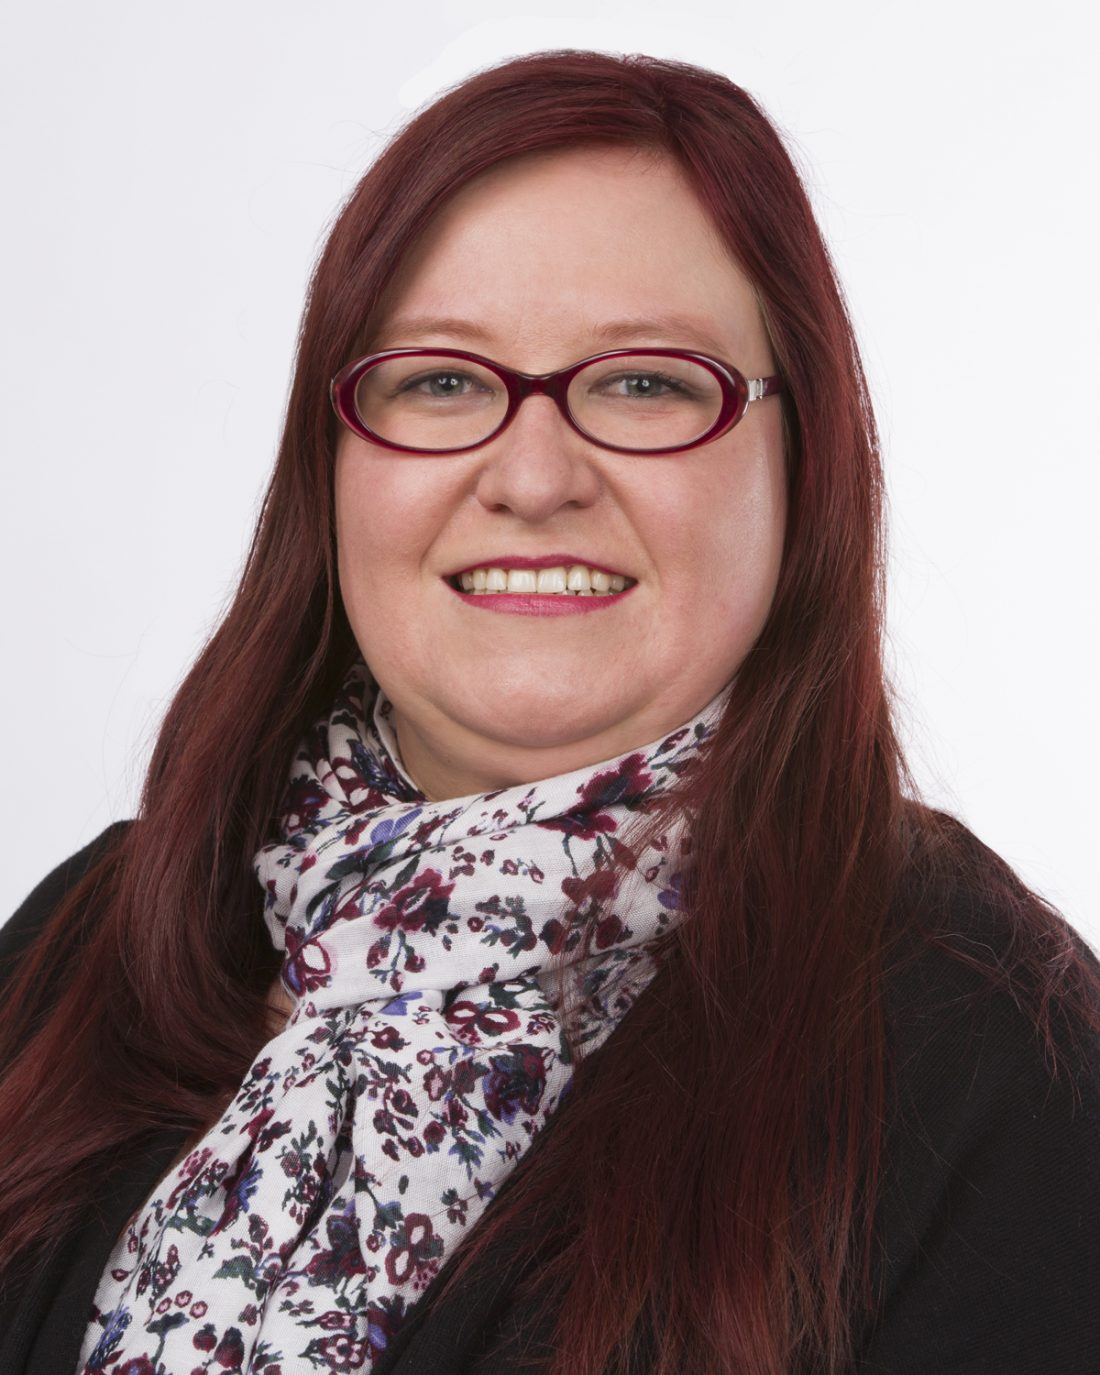 A head-shot of a woman smiling at the camera, she has wine red hair and red-rimmed glasses.